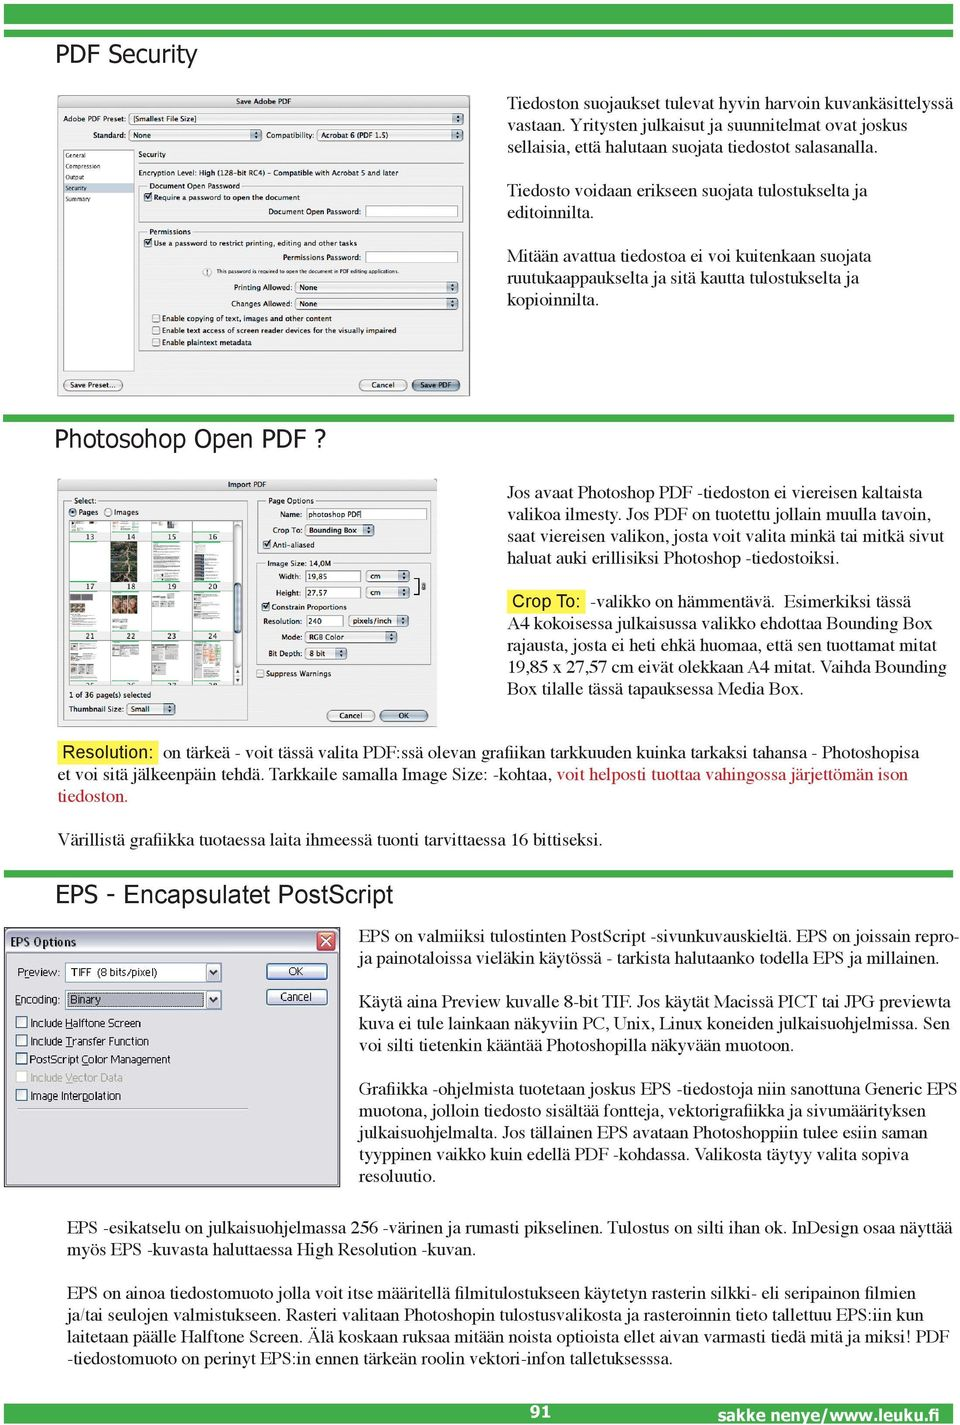 Photosohop Open PDF? Jos avaat Photoshop PDF -tiedoston ei viereisen kaltaista valikoa ilmesty.